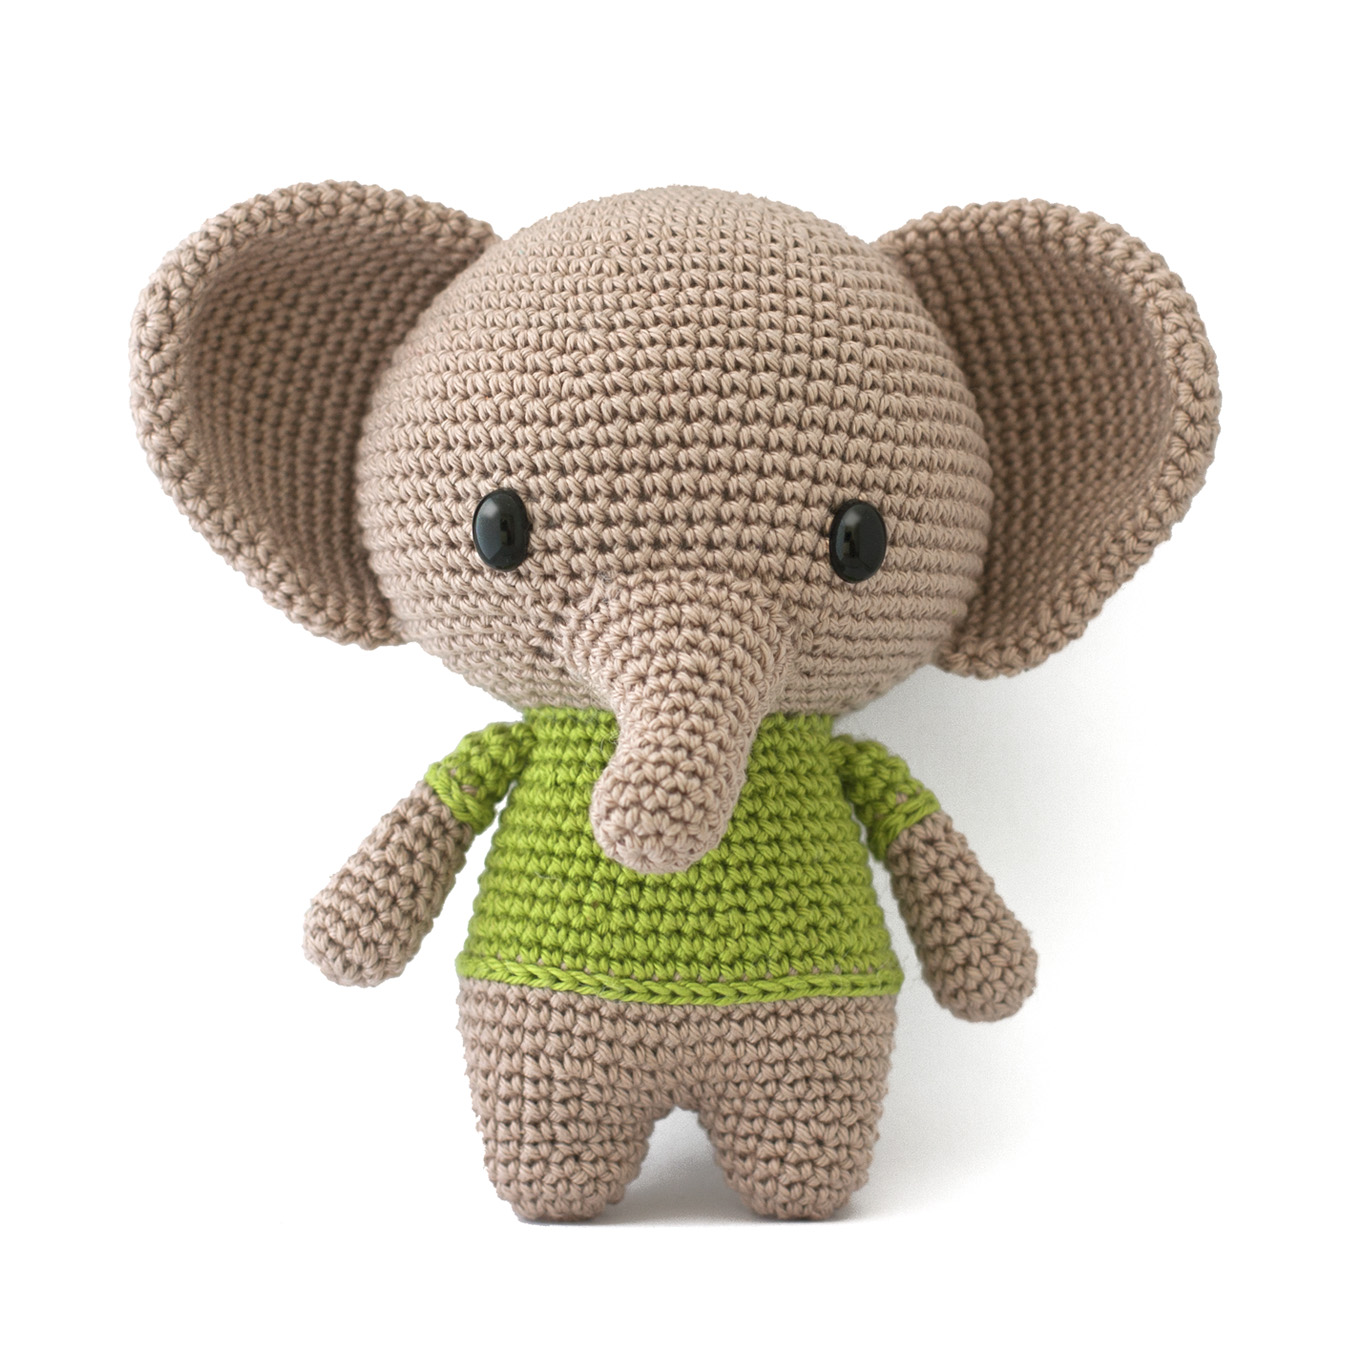 Amigurumi Pattern Maker : Toy Patterns by DIY Fluffies : Joe the elephant crochet ...